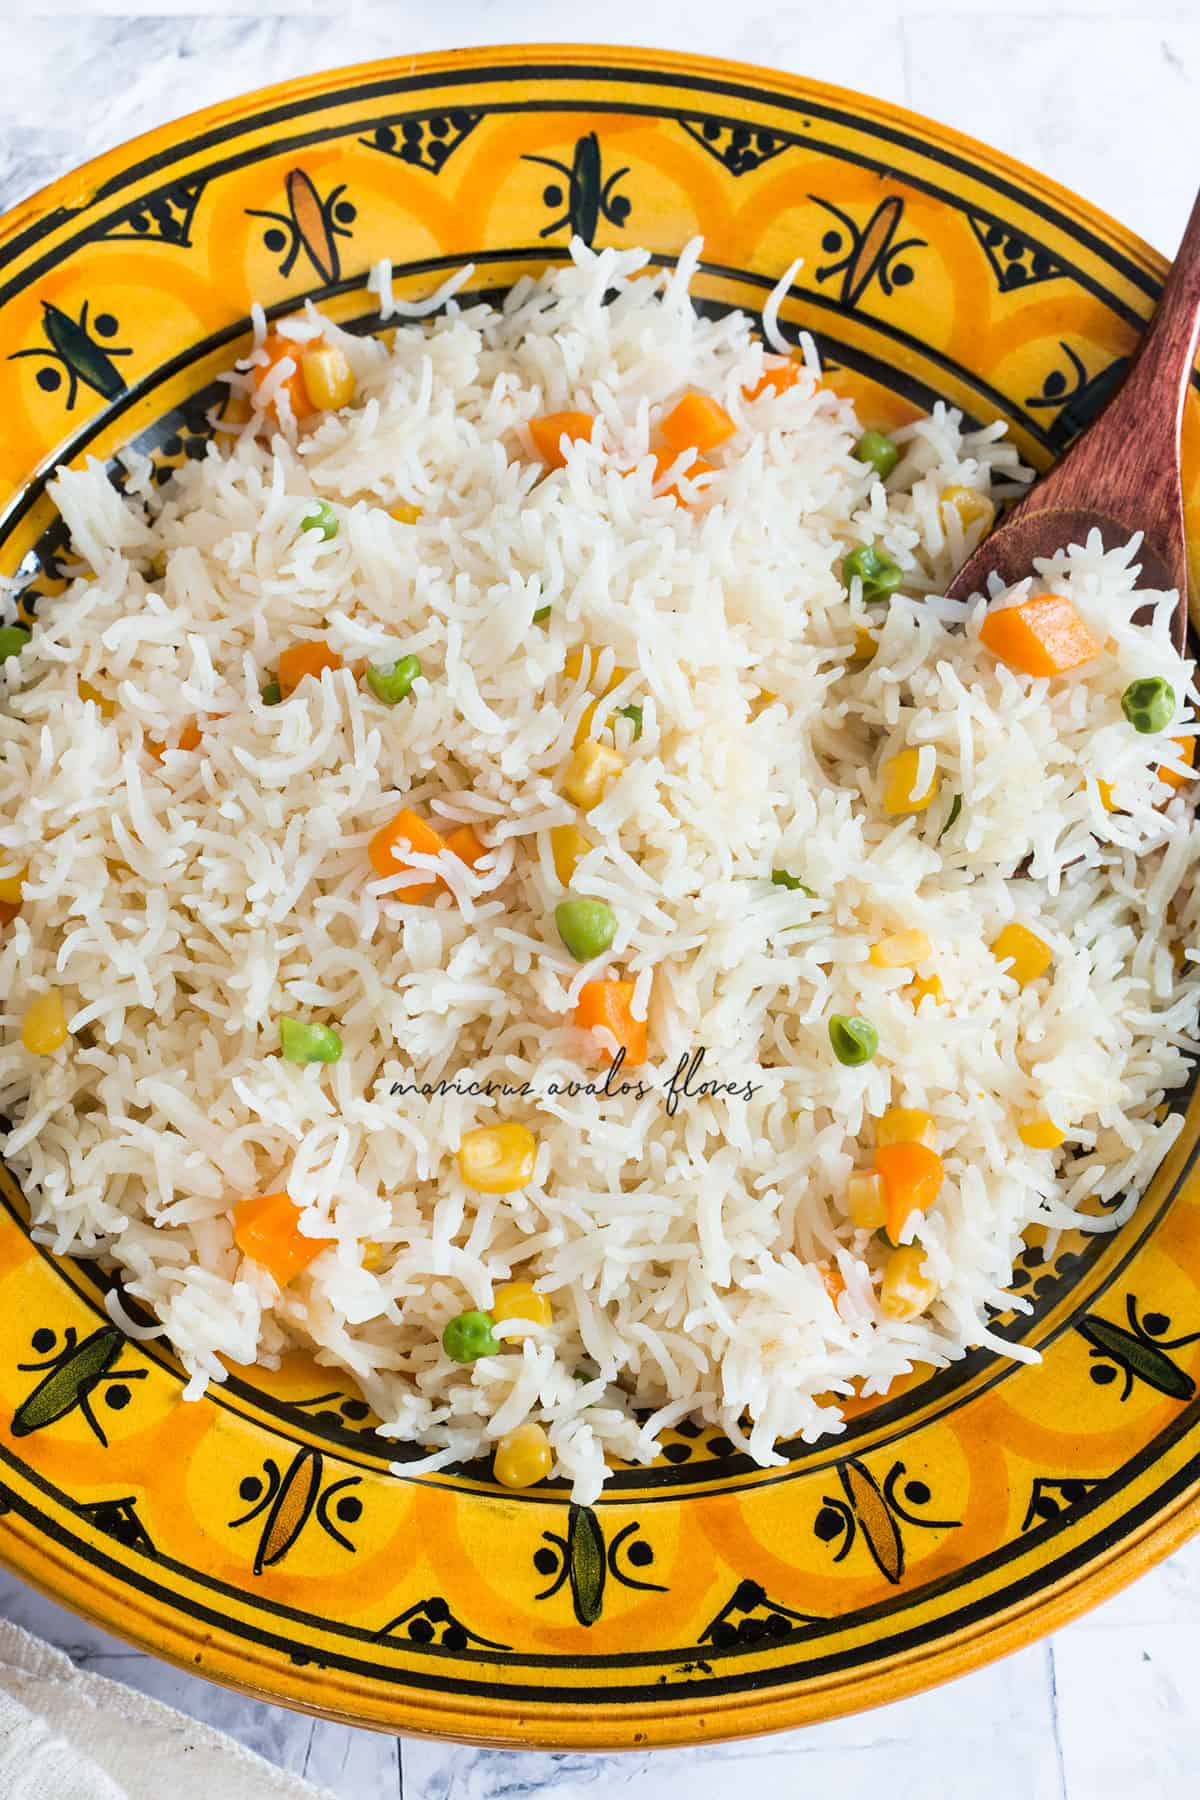 A yellow plate containing white rice with vegetables. Seen from above.